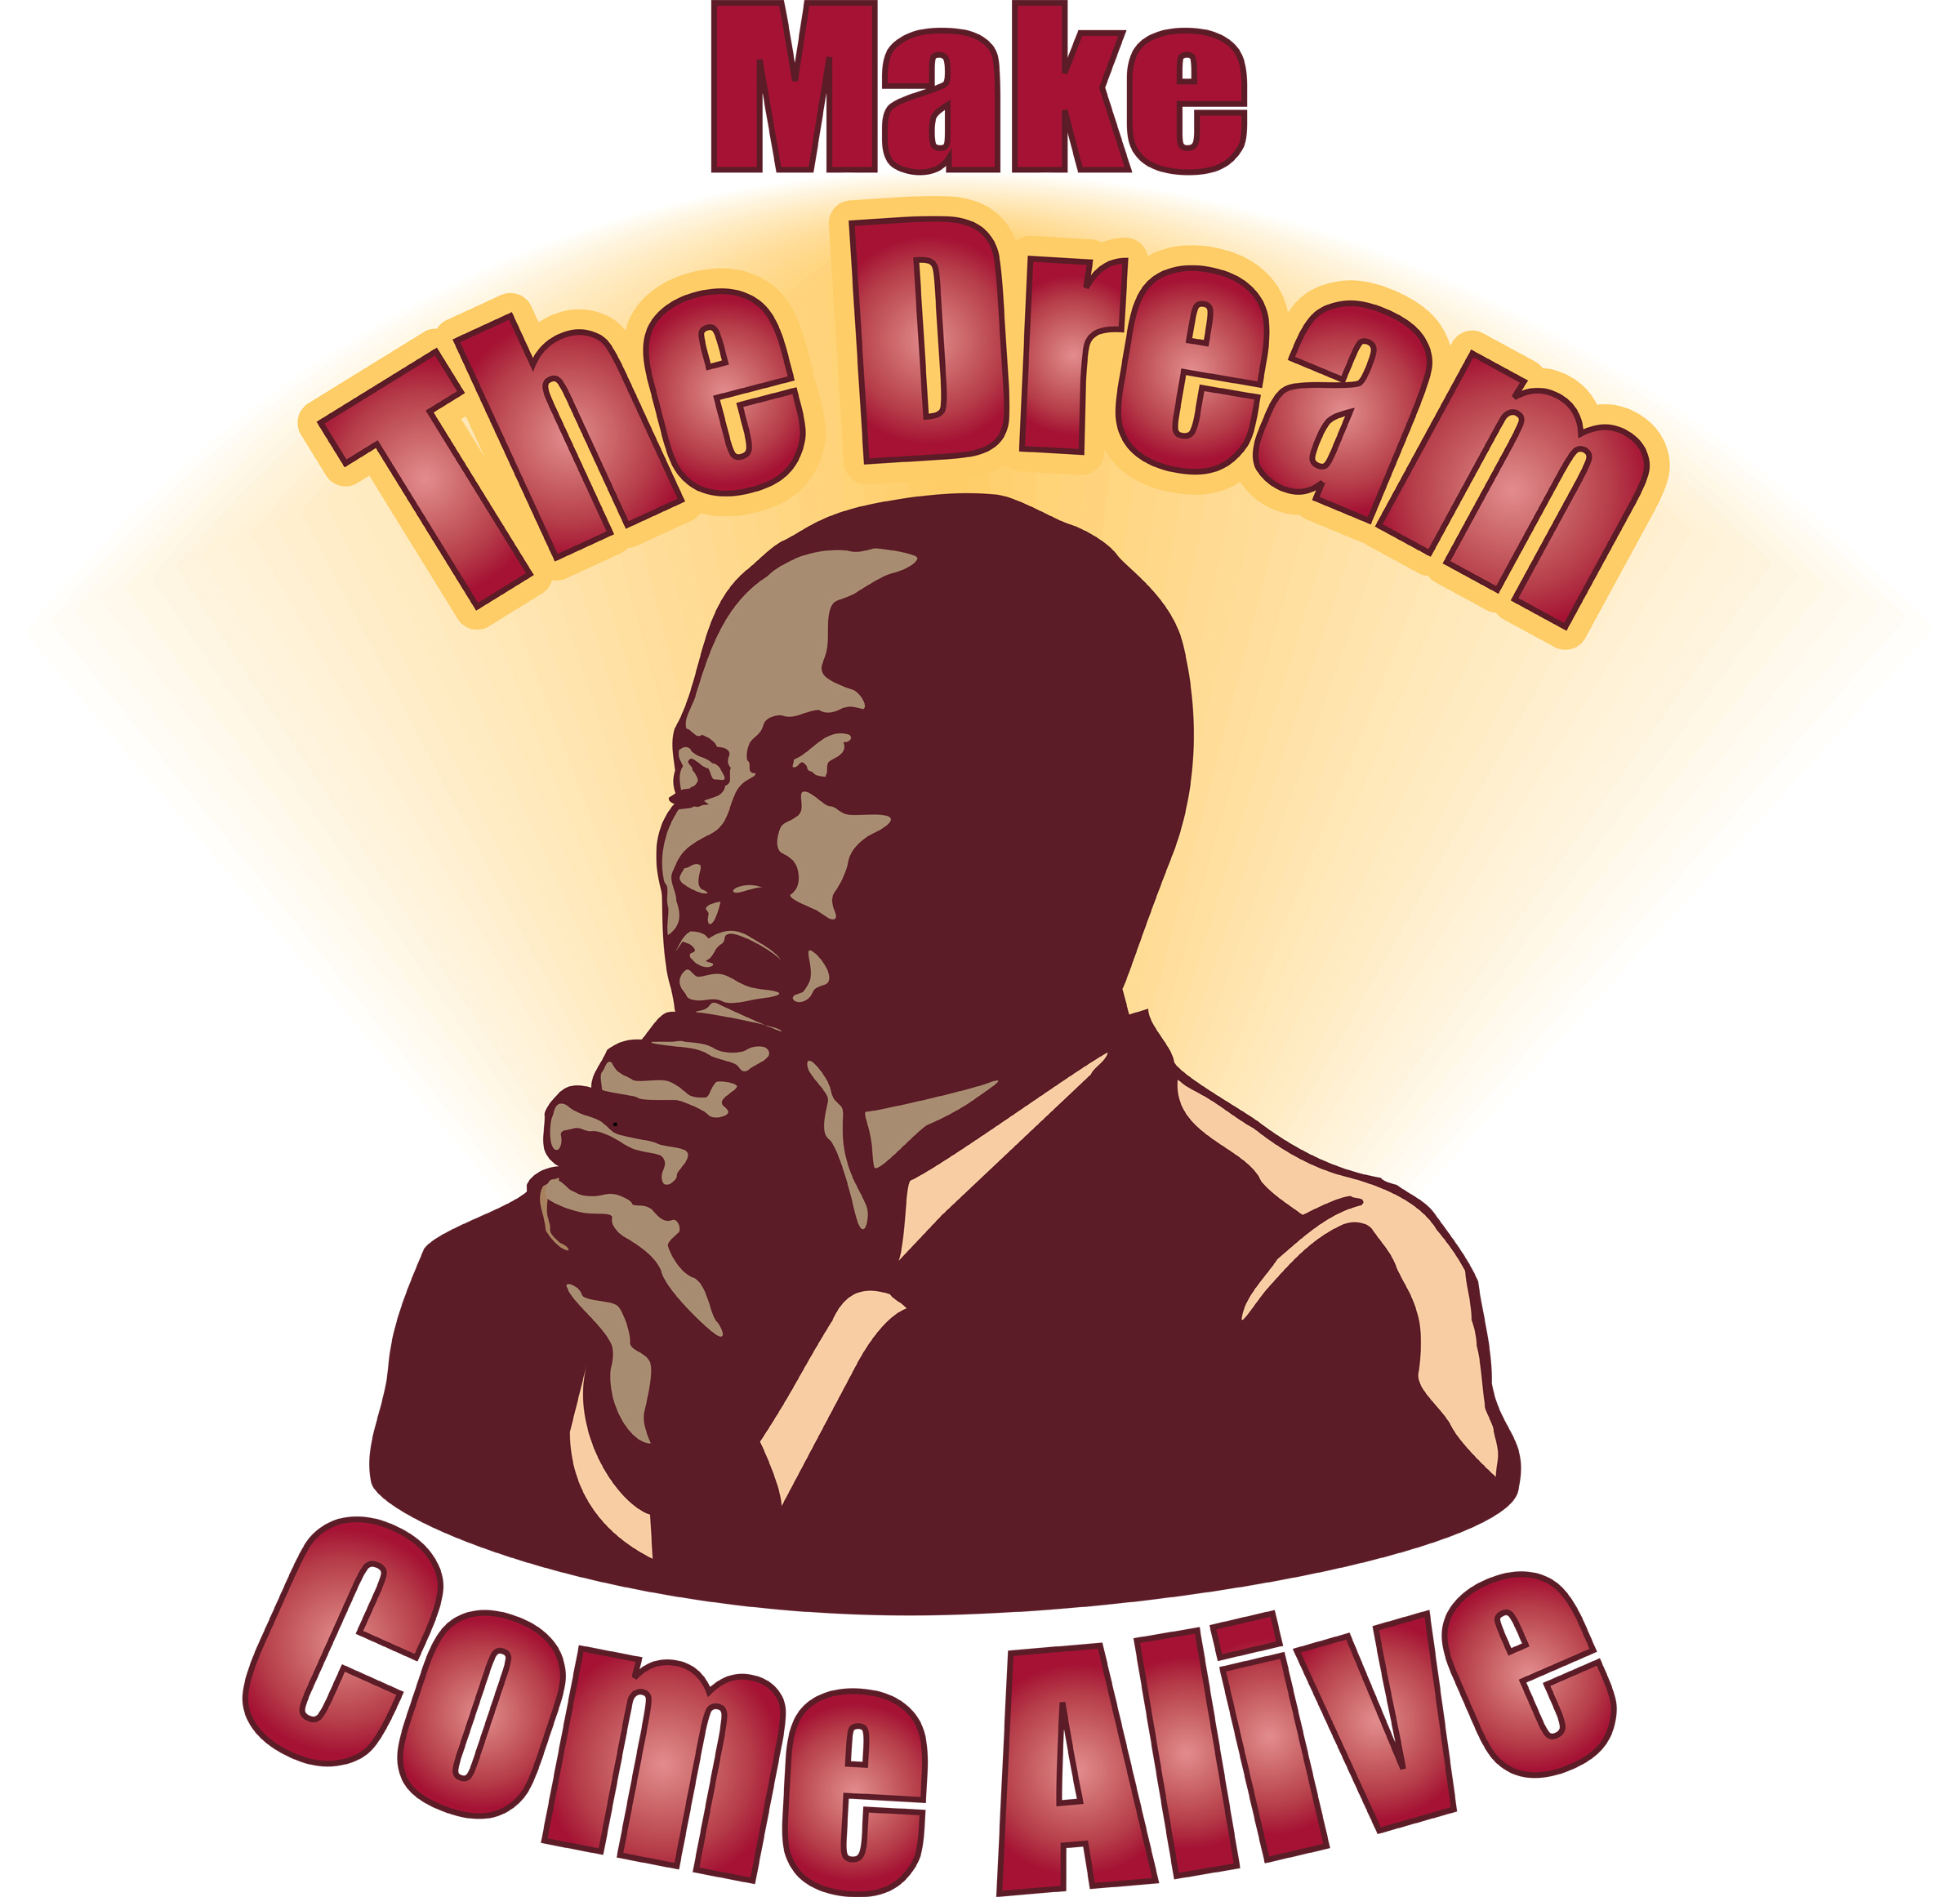 MLK dream meme